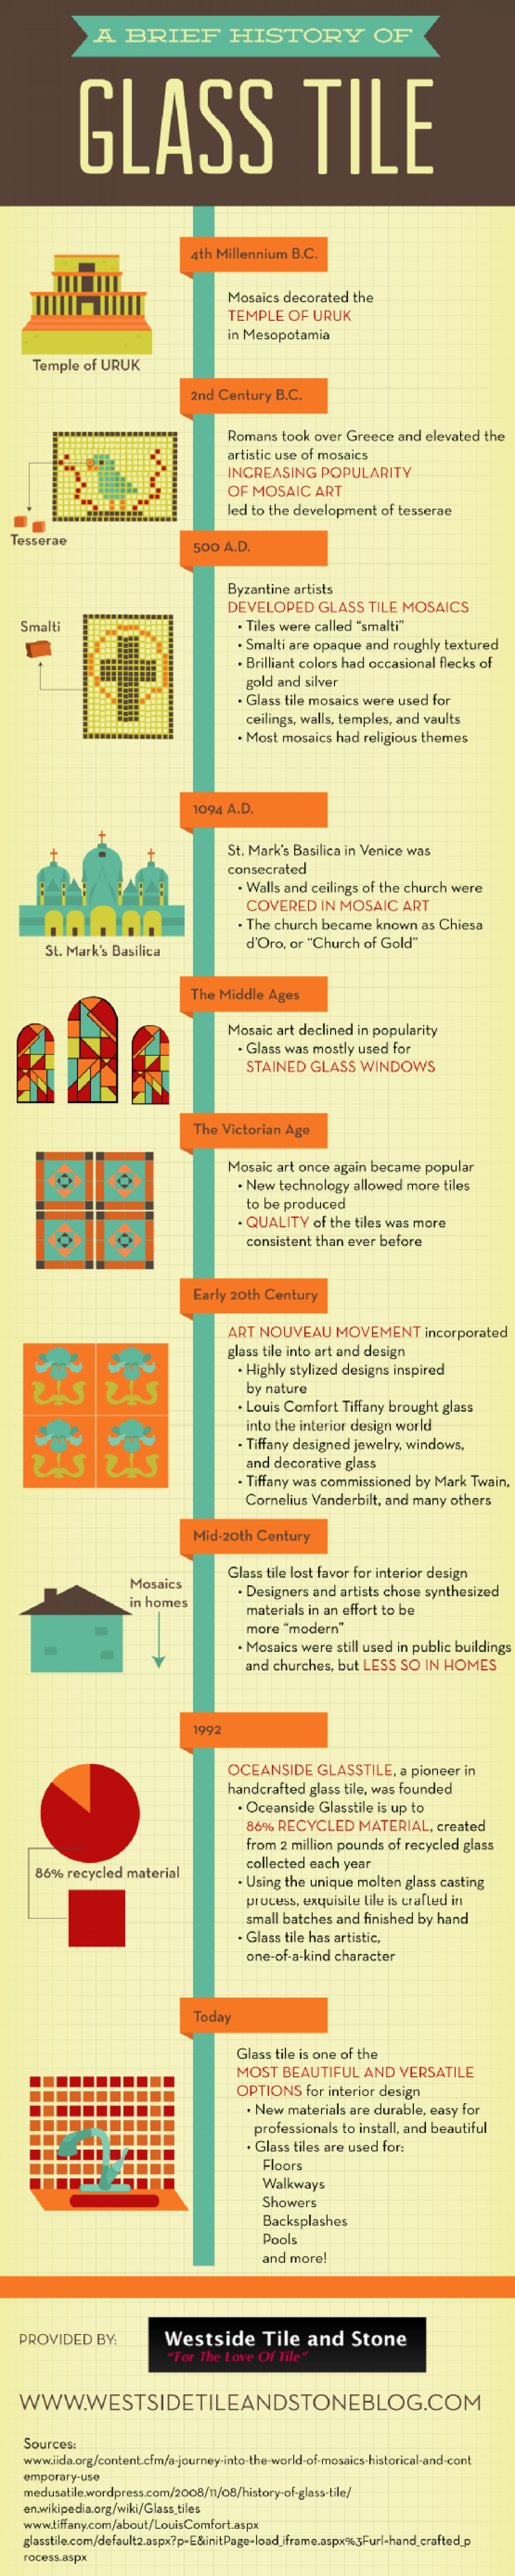 A Brief History of Glass Tile Infographic